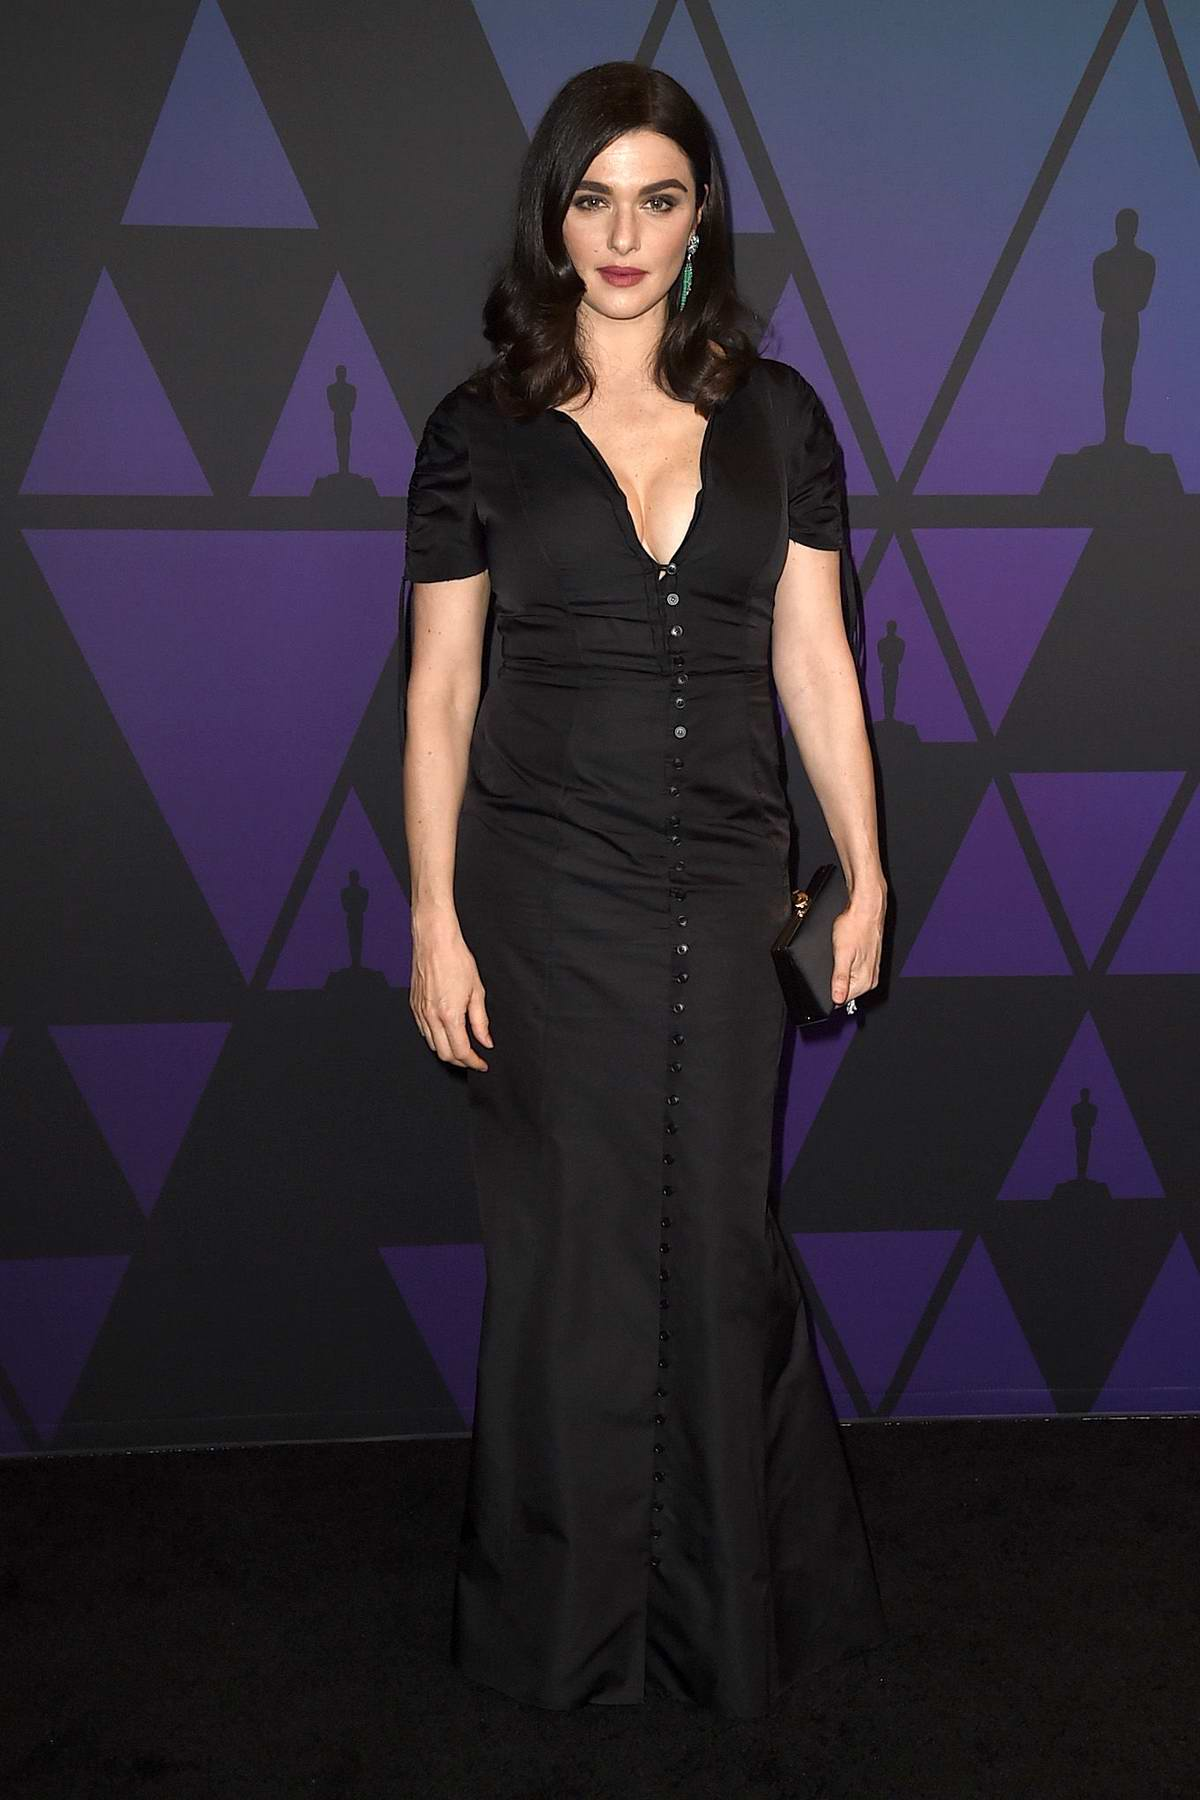 Rachel Weisz attends the 10th Annual Governors Awards at the Academy Of Motion Picture Arts And Sciences' in Hollywood, California